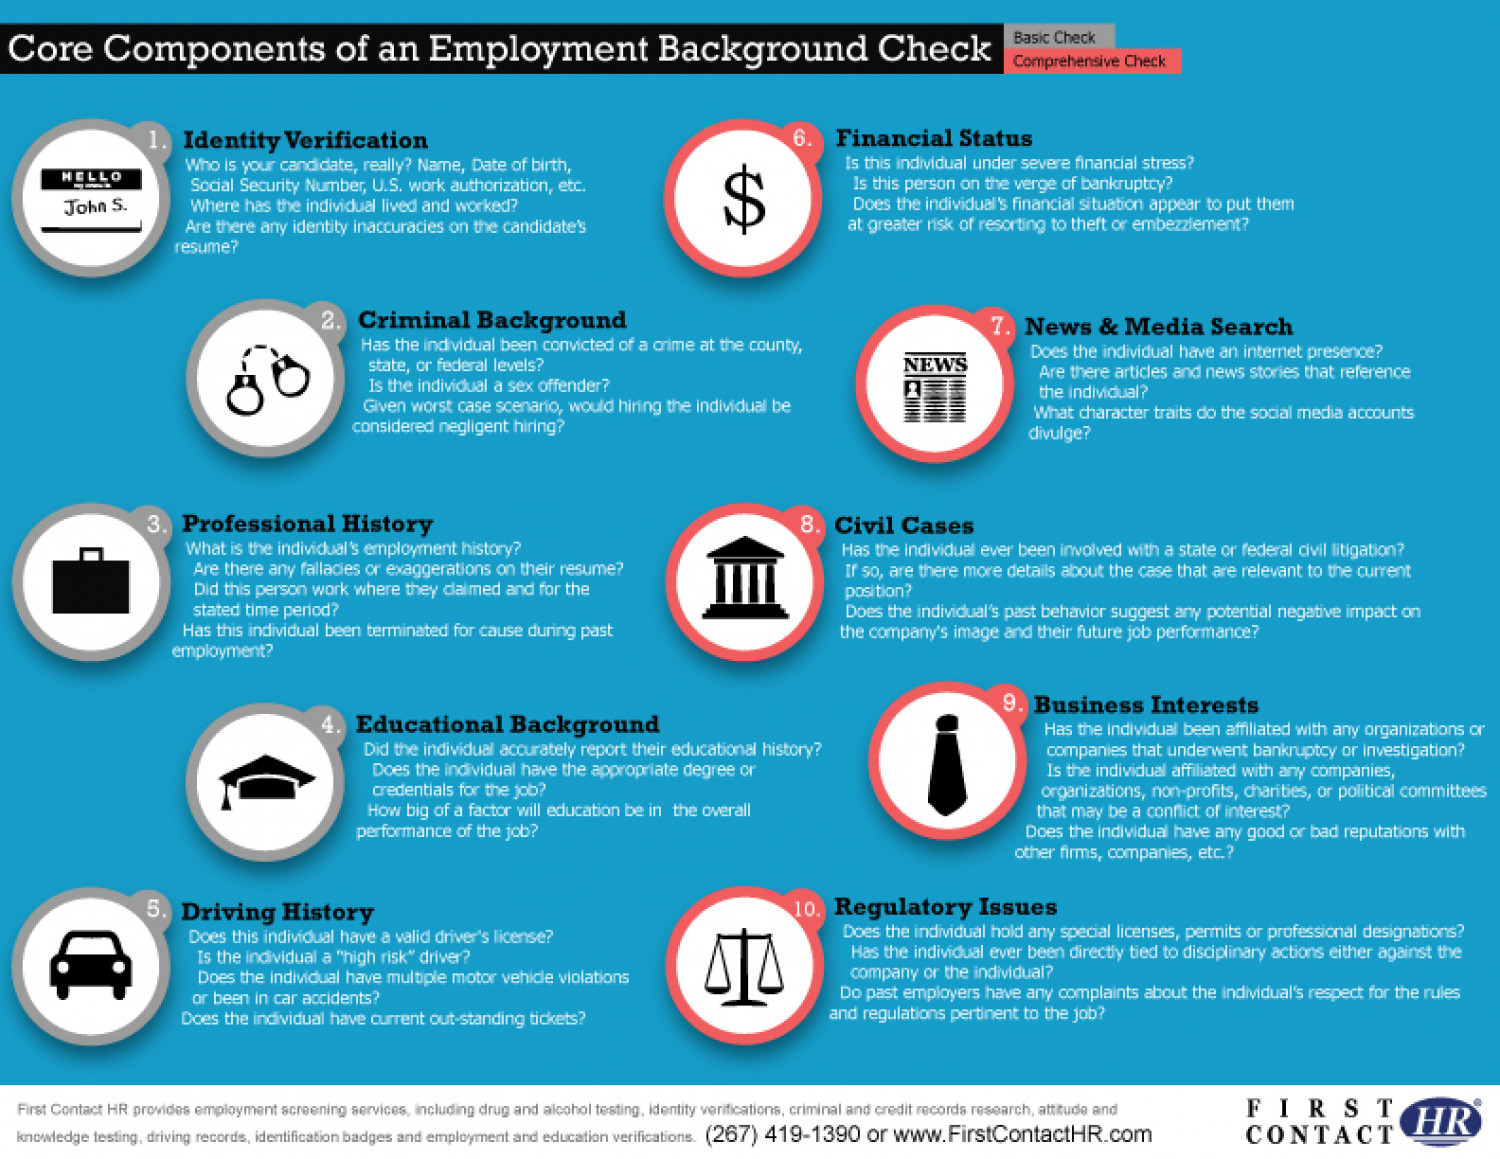 Core Components of a Background Check  Infographic